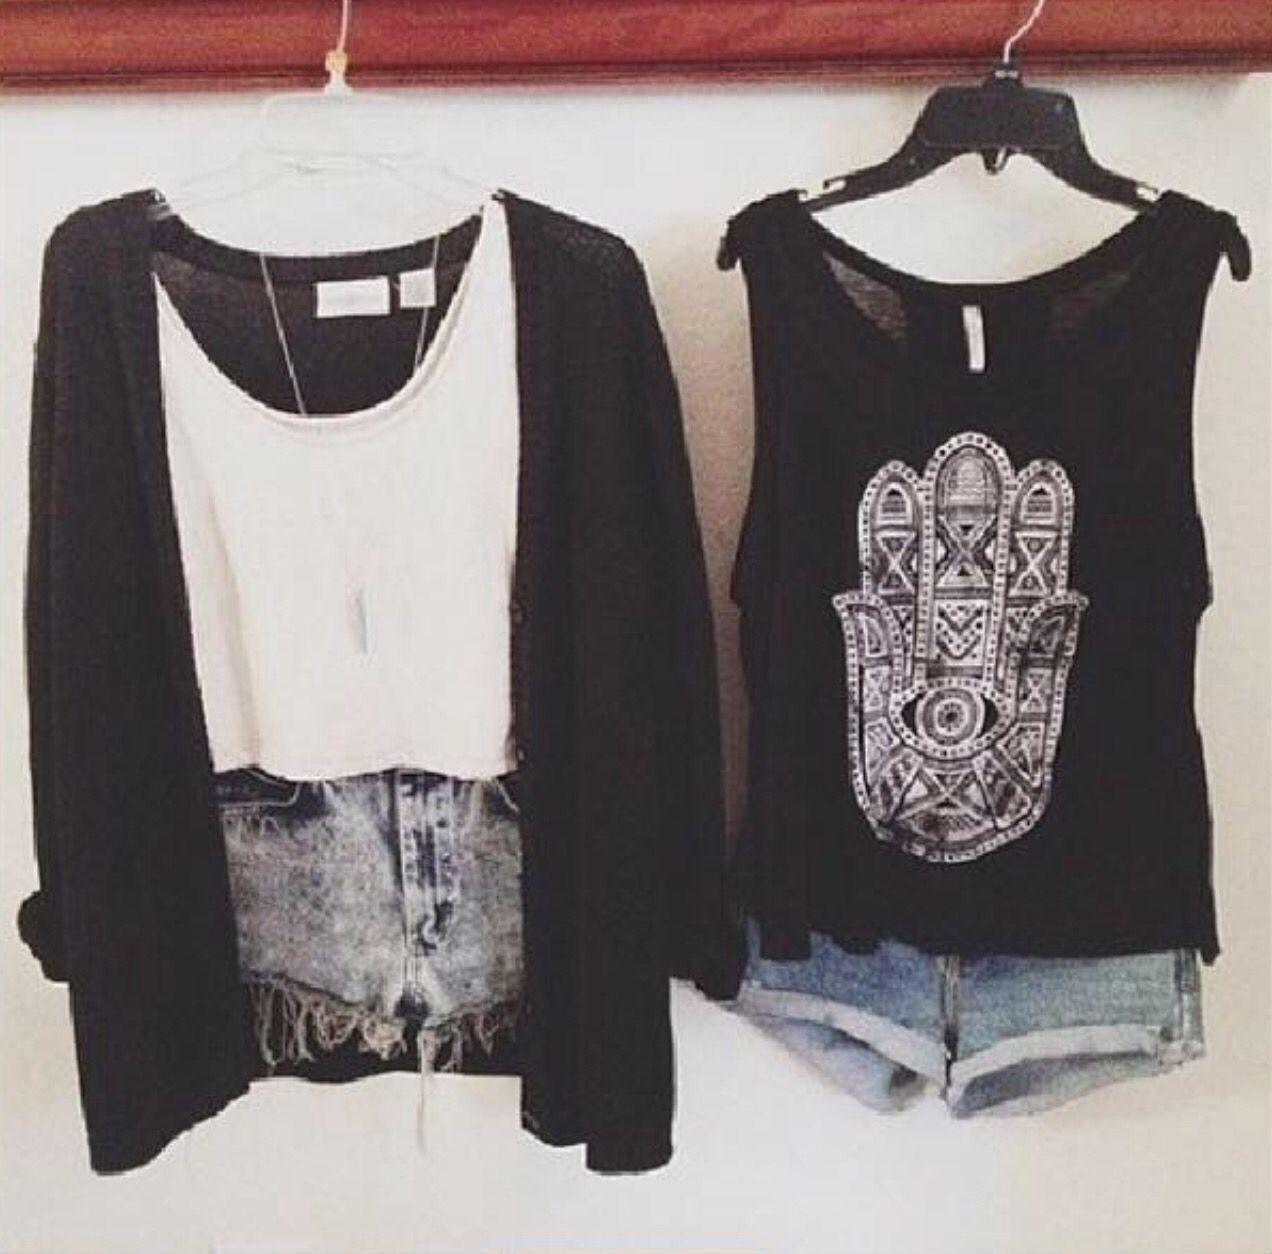 High School Tumblr Outfit!